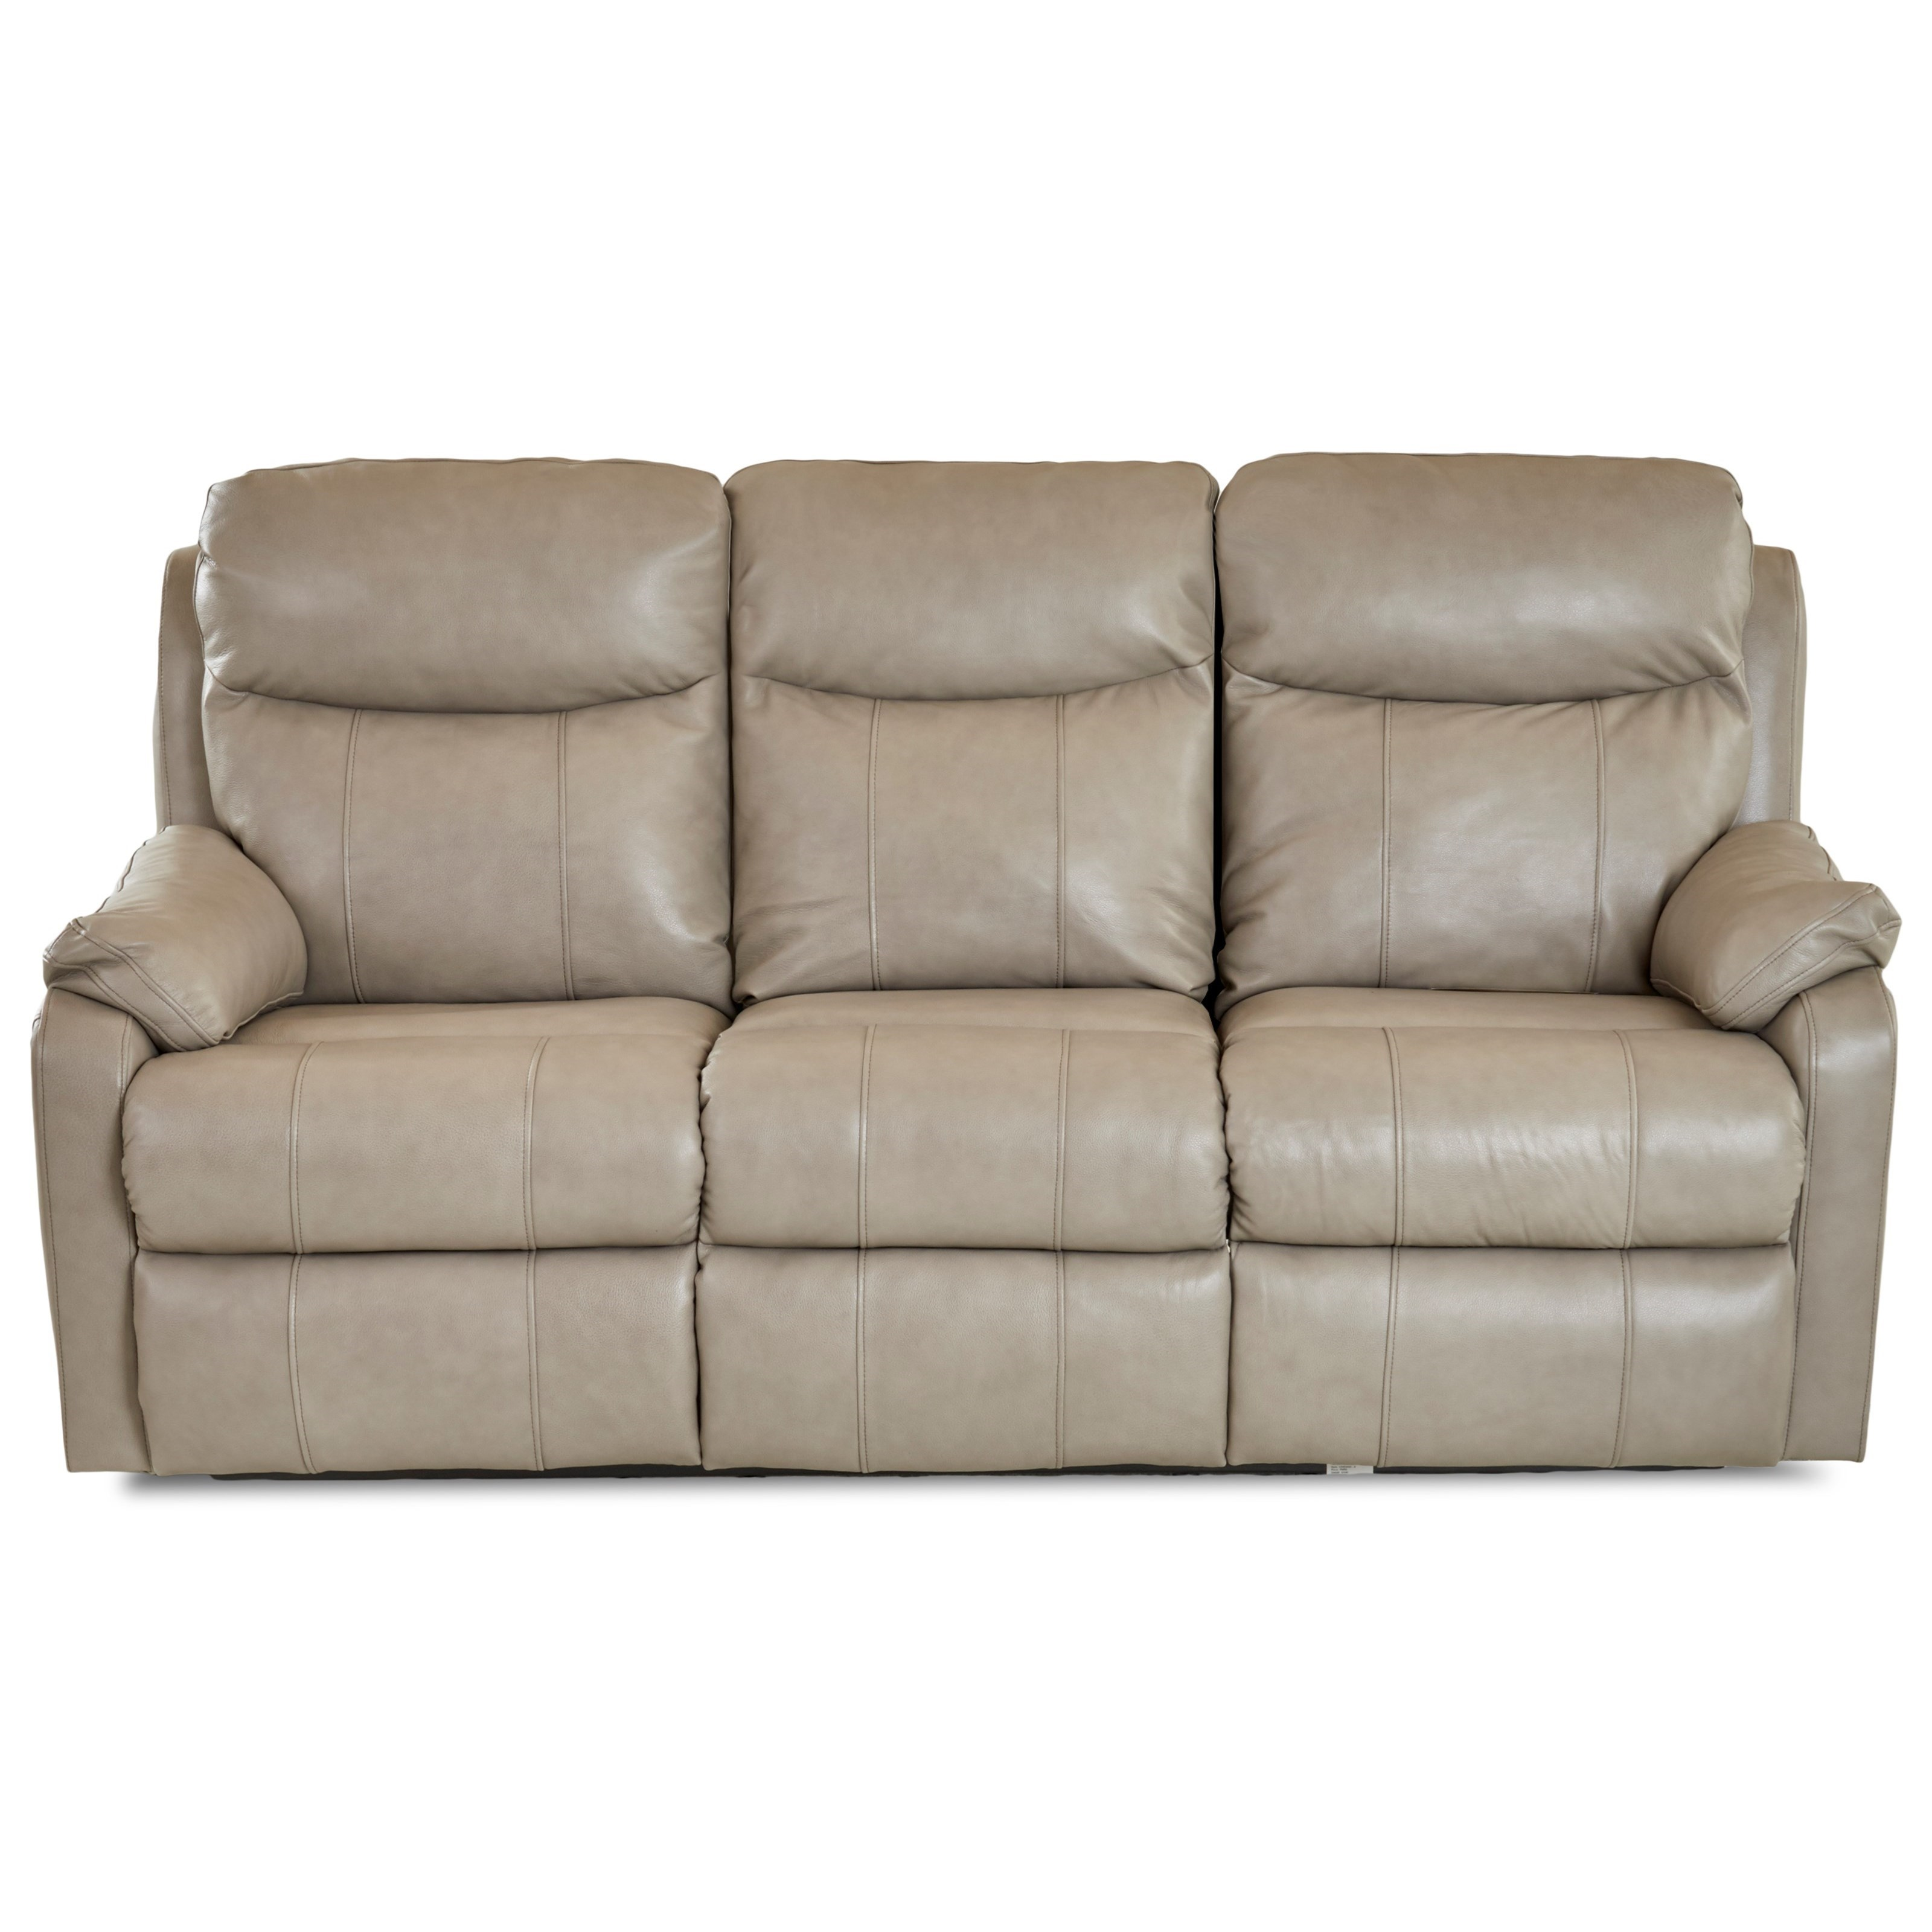 Solitaire Power Reclining Sofa by Klaussner at Lapeer Furniture & Mattress Center